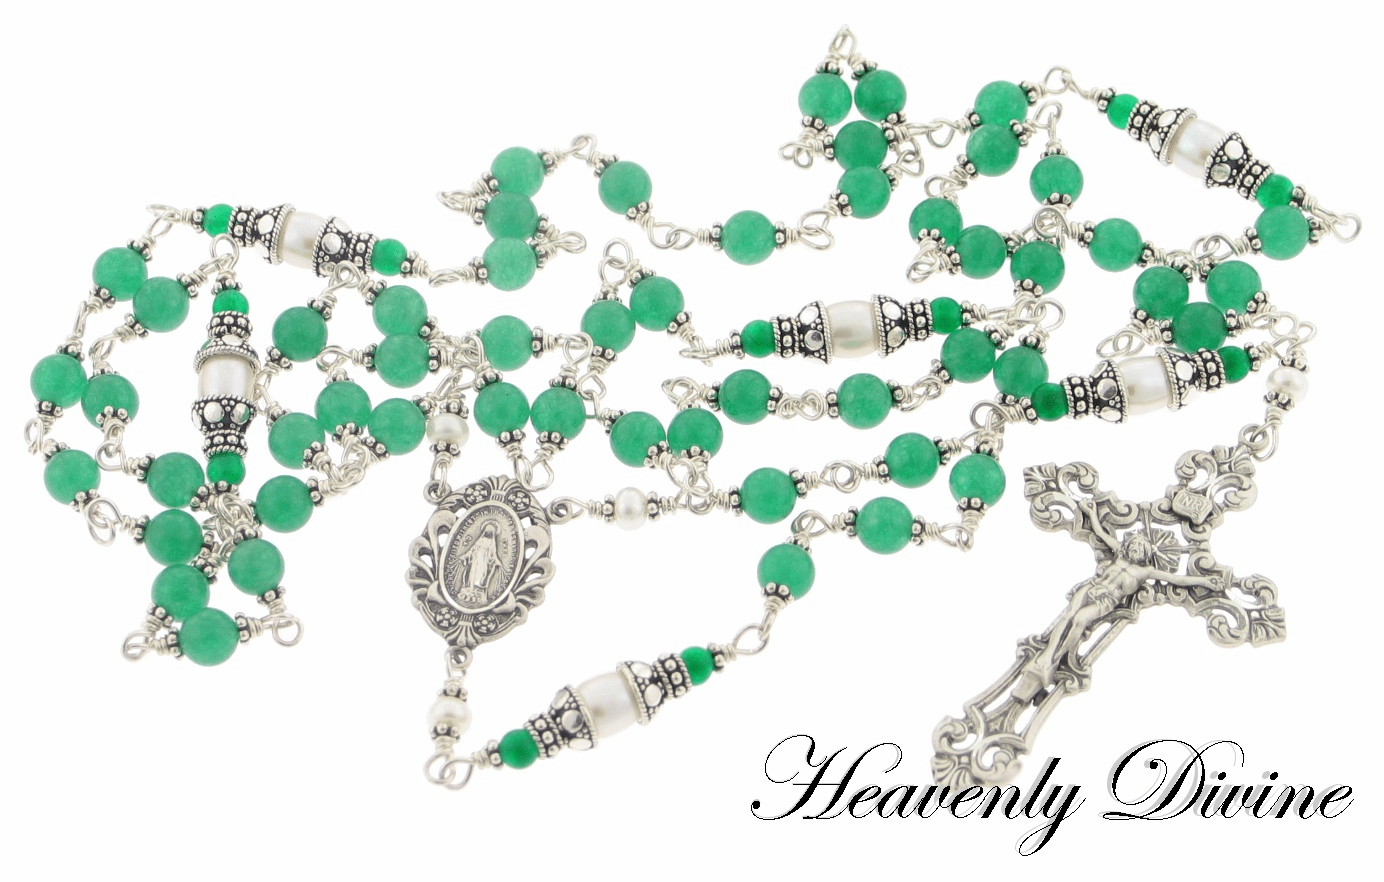 Handmade Green Jade & Freshwater Pearl Wire Wrapped Rosary by Heavenly Divine